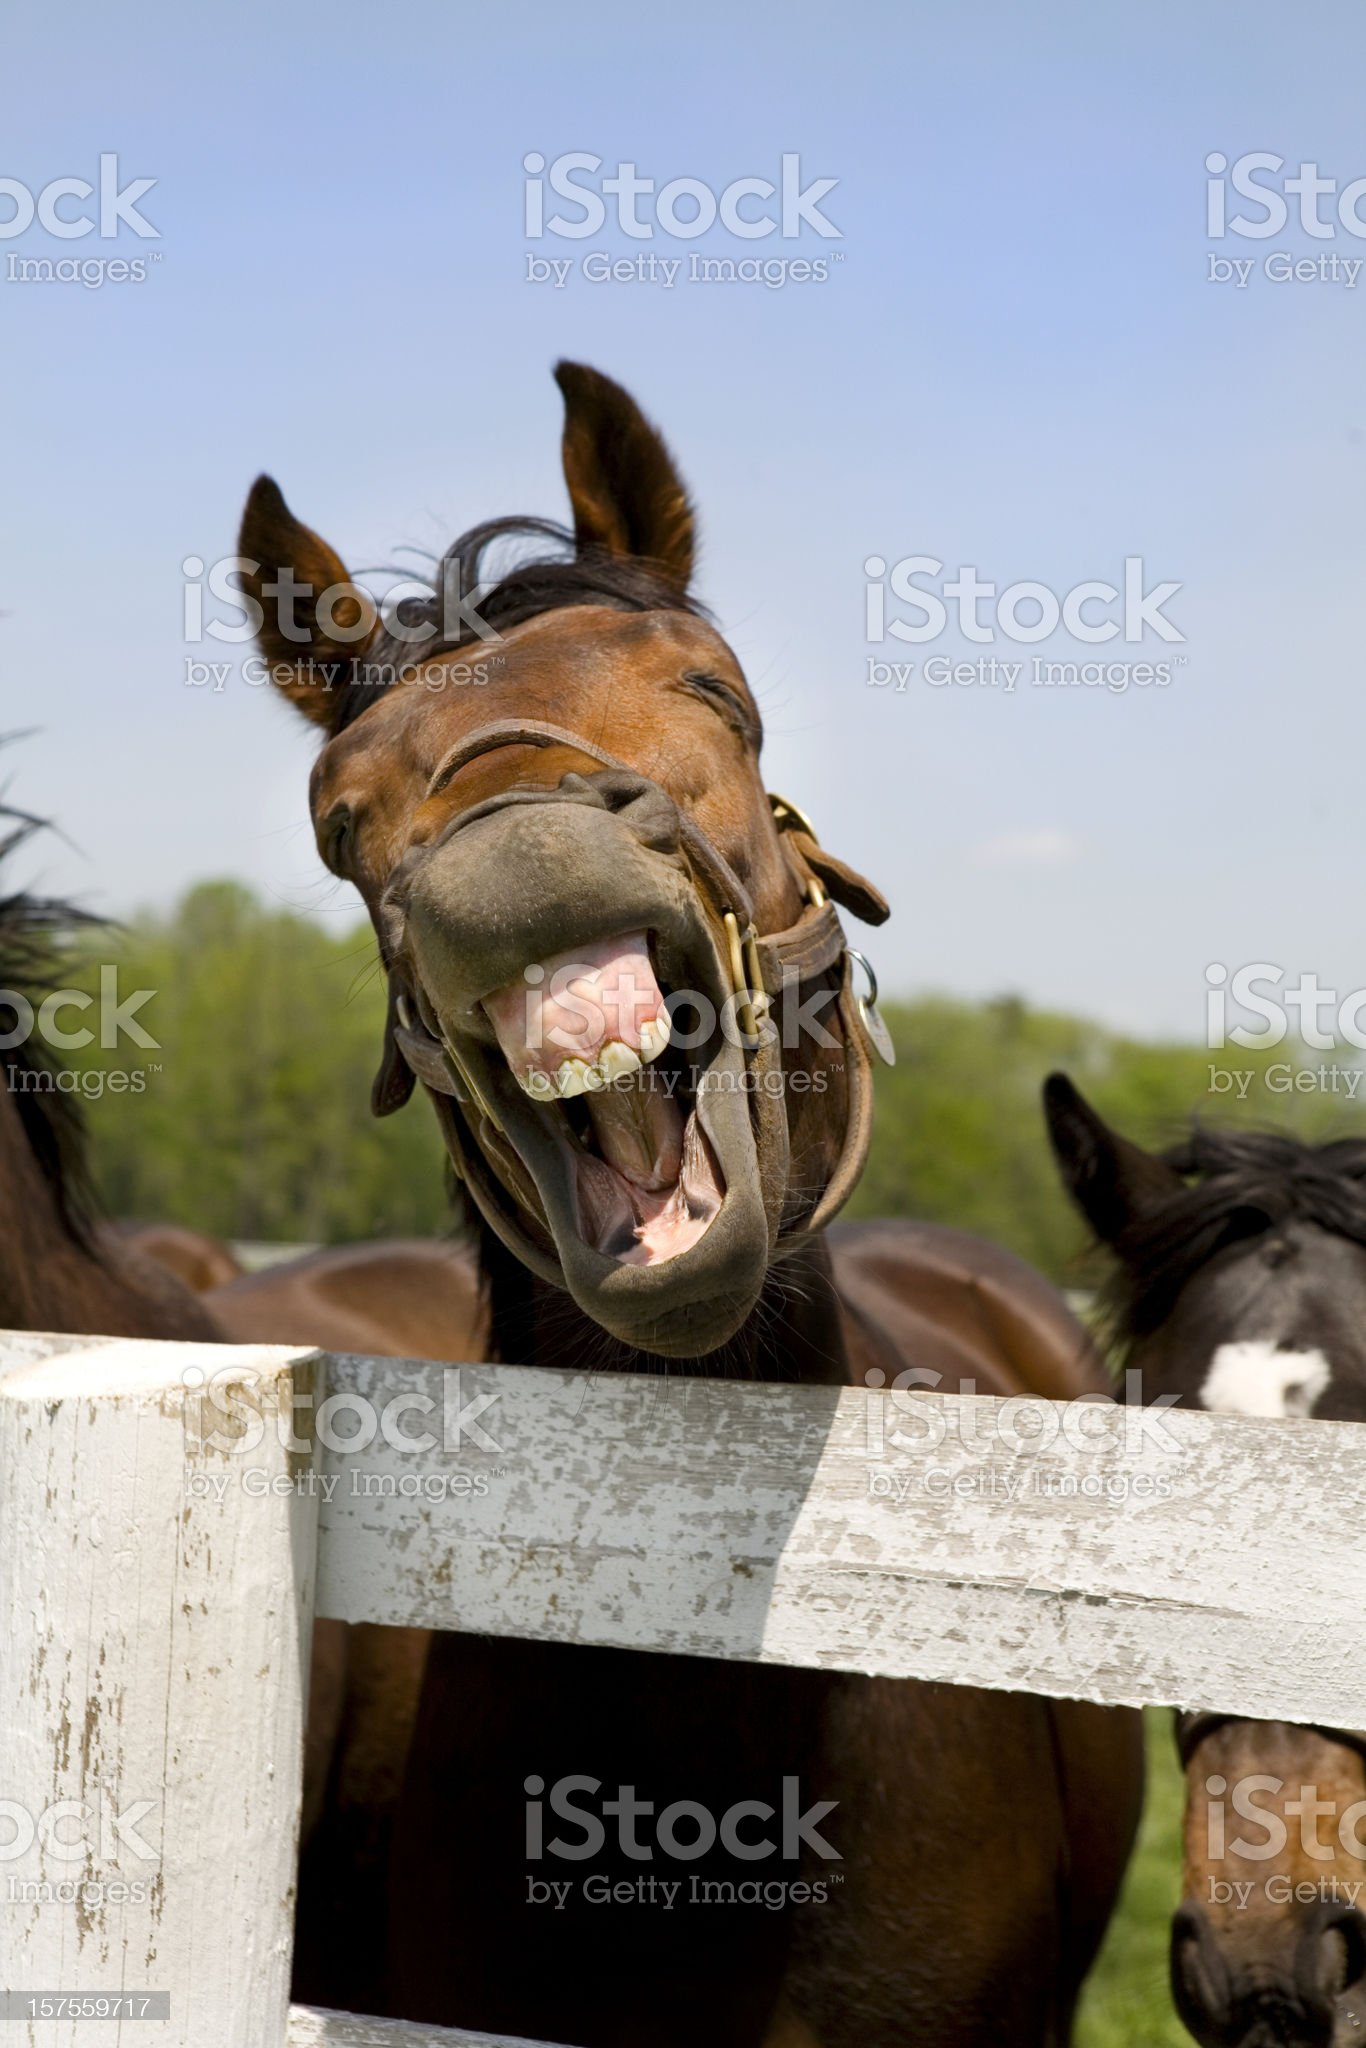 Laughing Thoroughbred Racehorse royalty-free stock photo